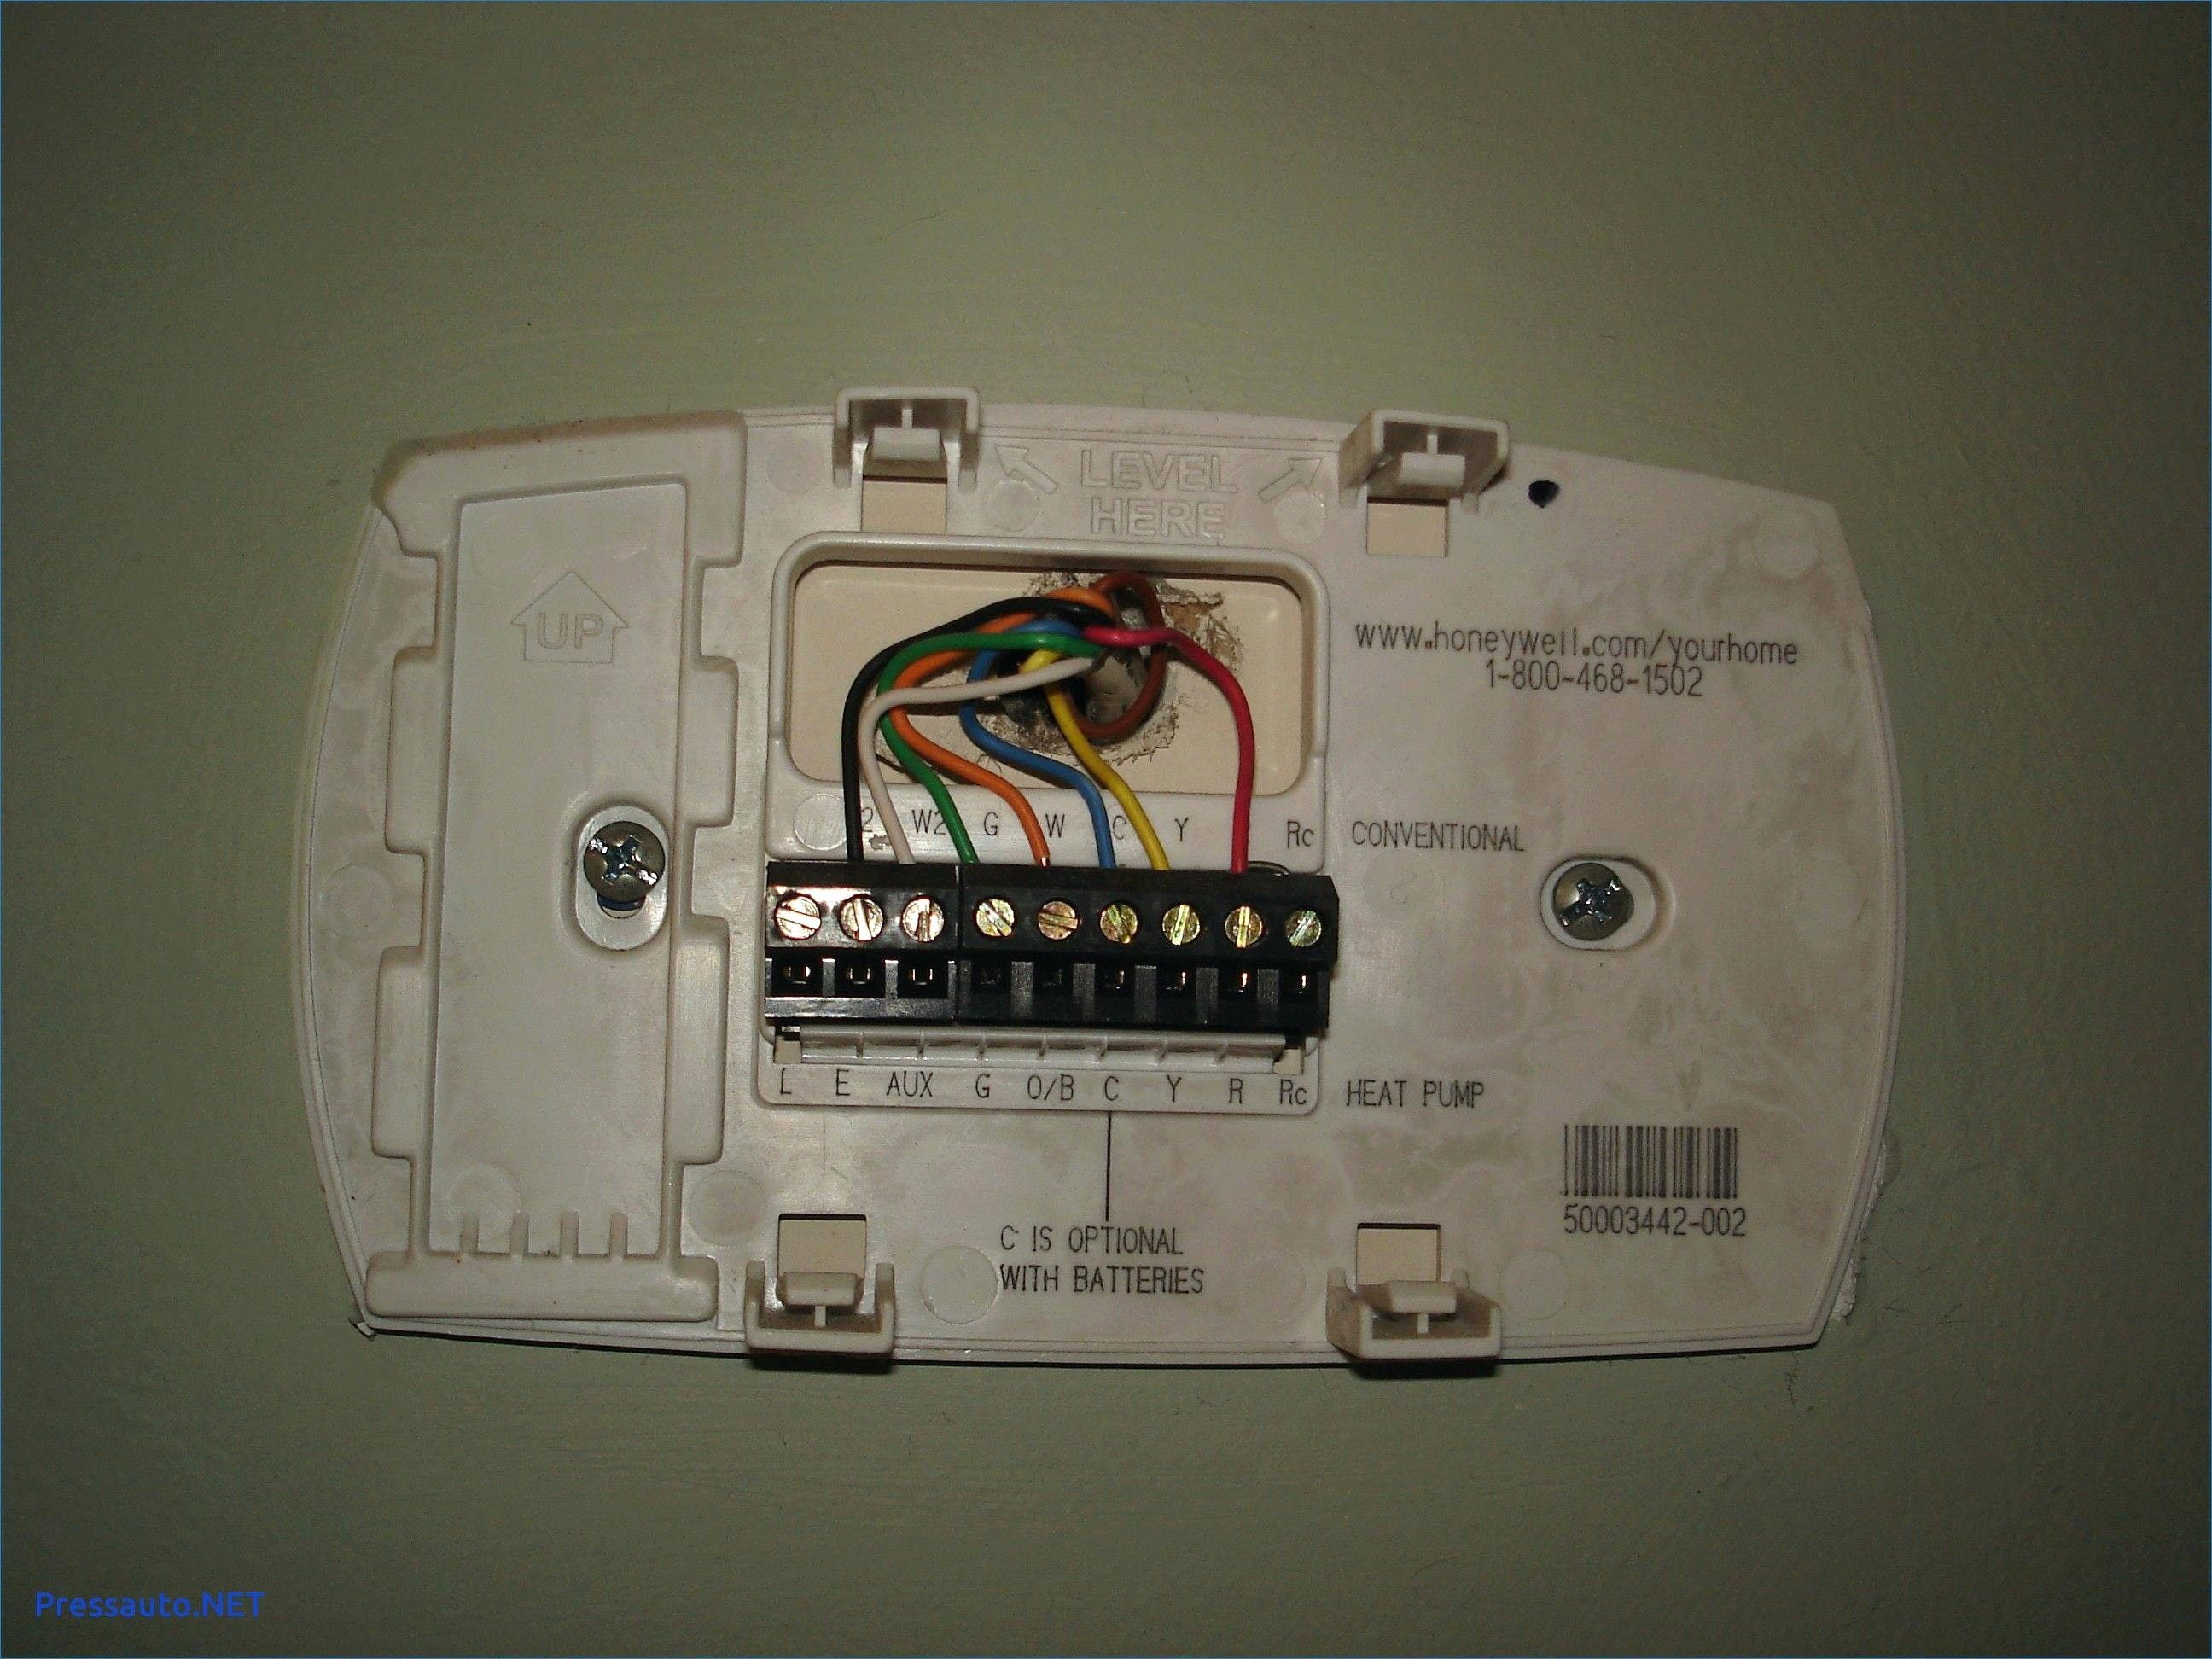 honeywell rth2300 thermostat wiring diagram wiring diagram name honeywell thermostat rth221b wiring diagram honeywell rth221 wiring diagram [ 2592 x 1944 Pixel ]